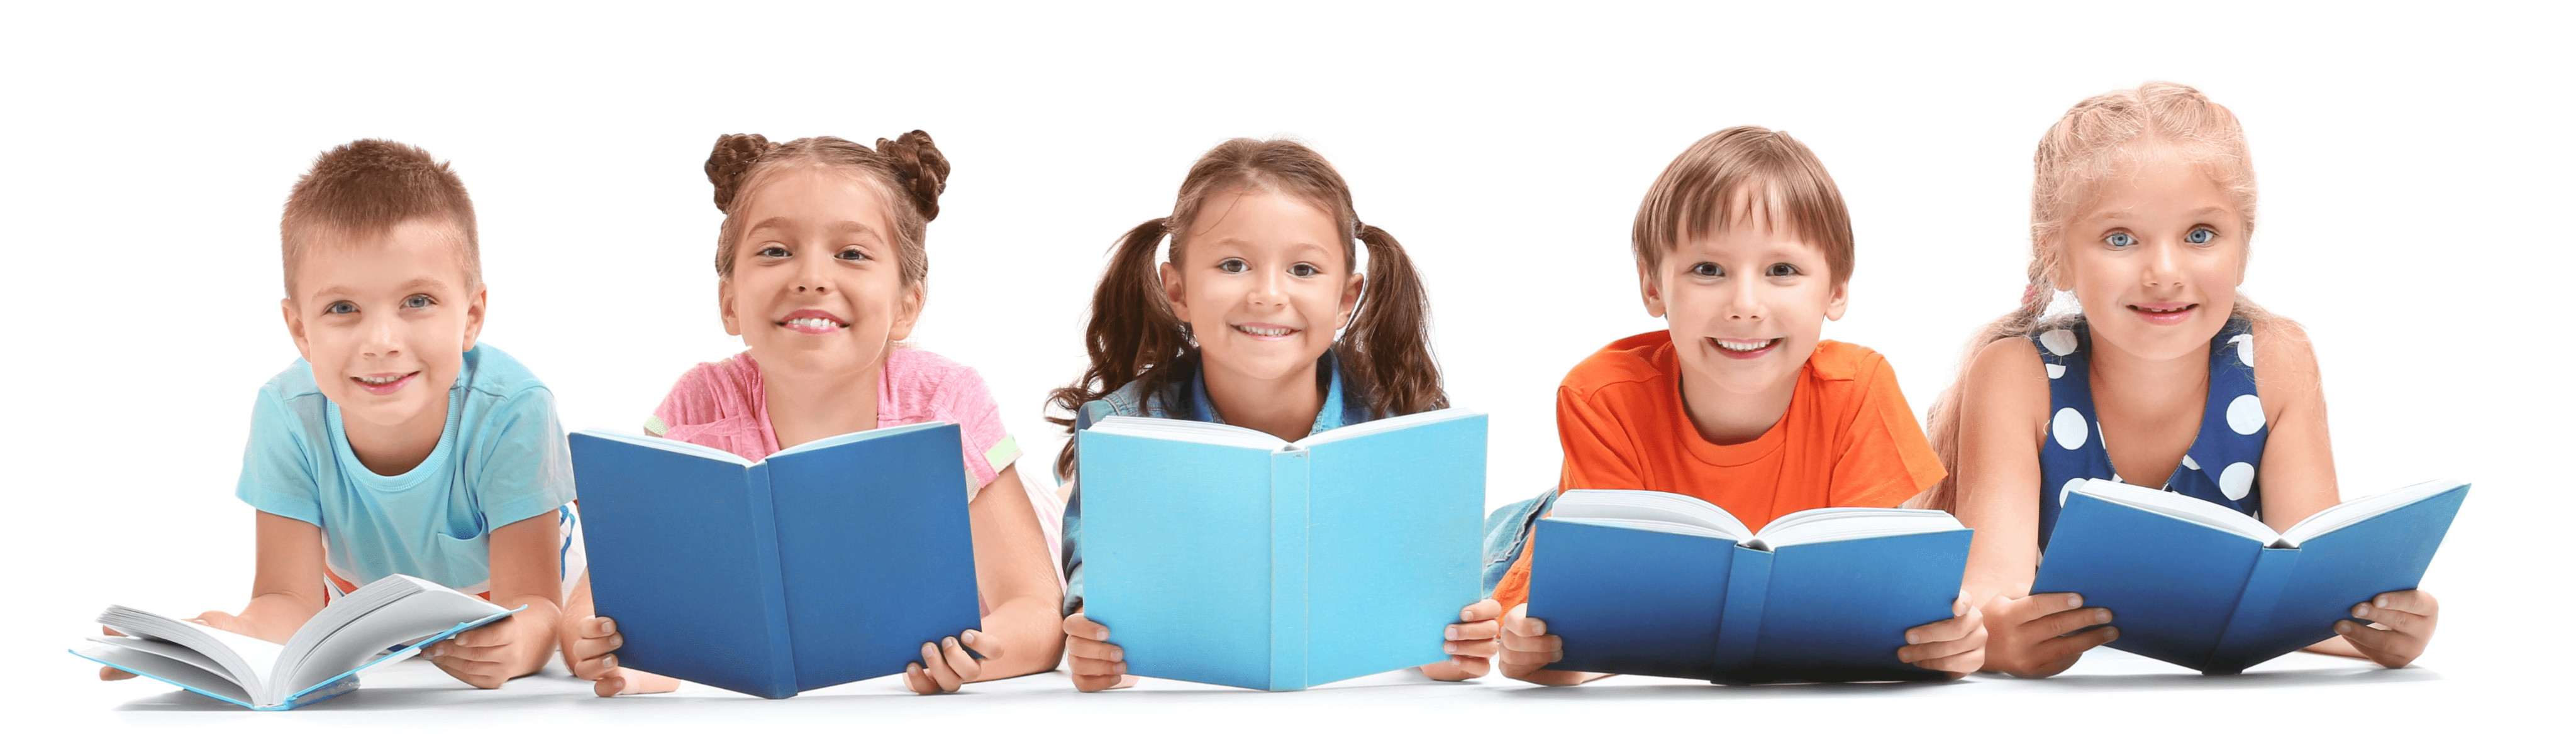 English Digraphs Er Ir And Ur Level 2 Activity For Kids